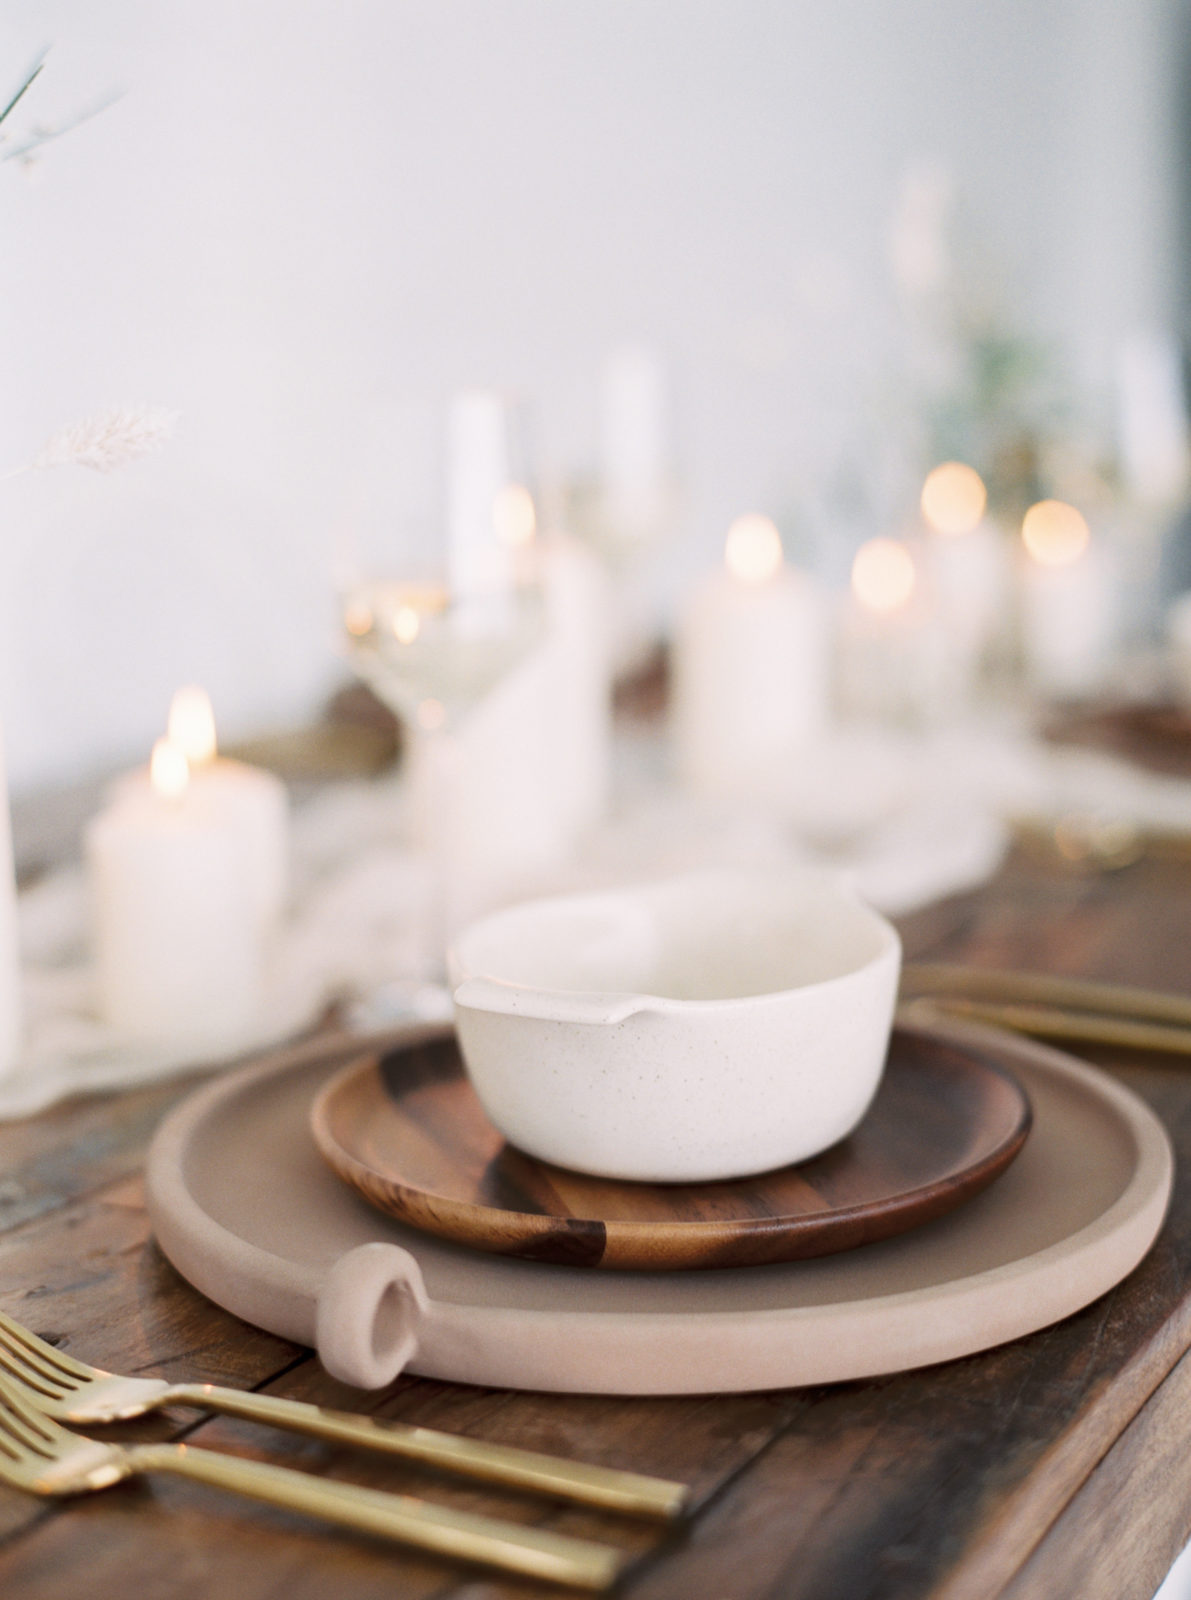 Wood and ceramic wedding place setting inspiration featured on Alexa Kay Events